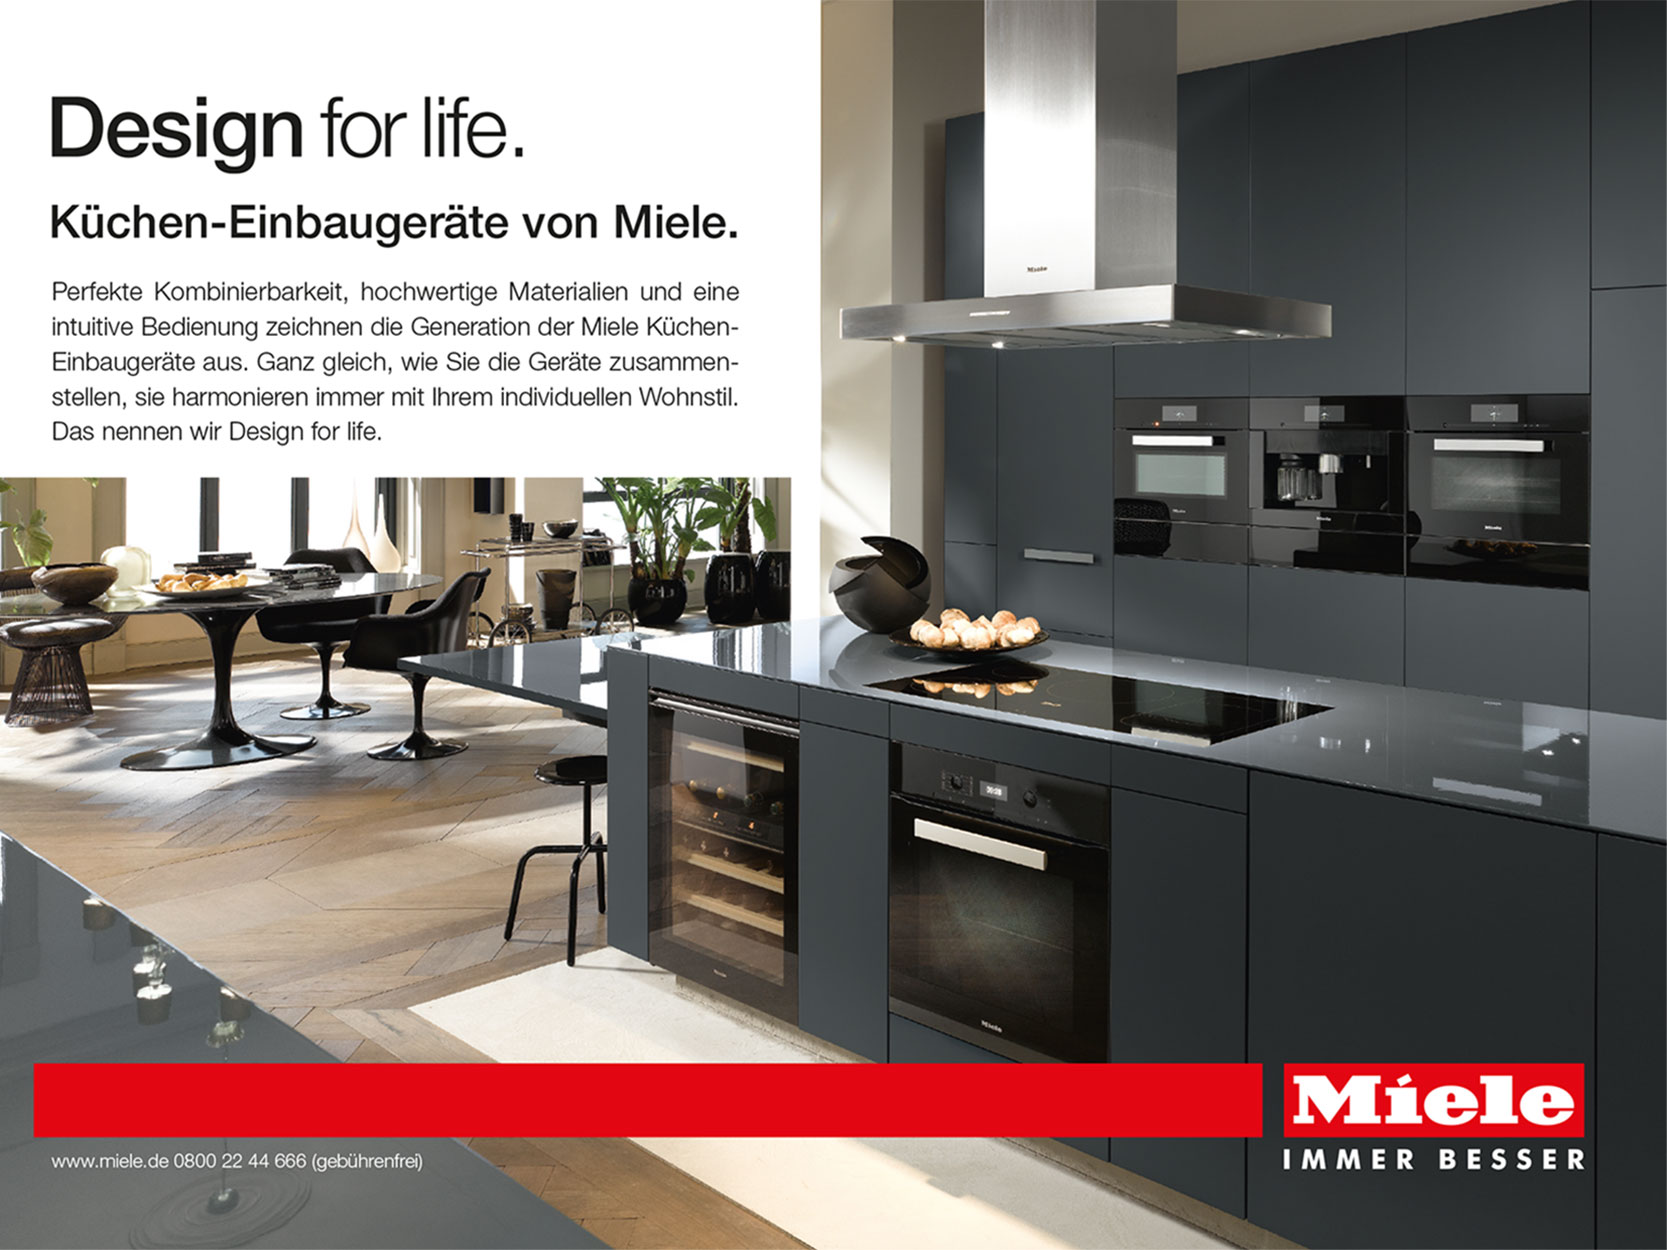 miele hochwertige einbauger te k chenprofi plauen. Black Bedroom Furniture Sets. Home Design Ideas